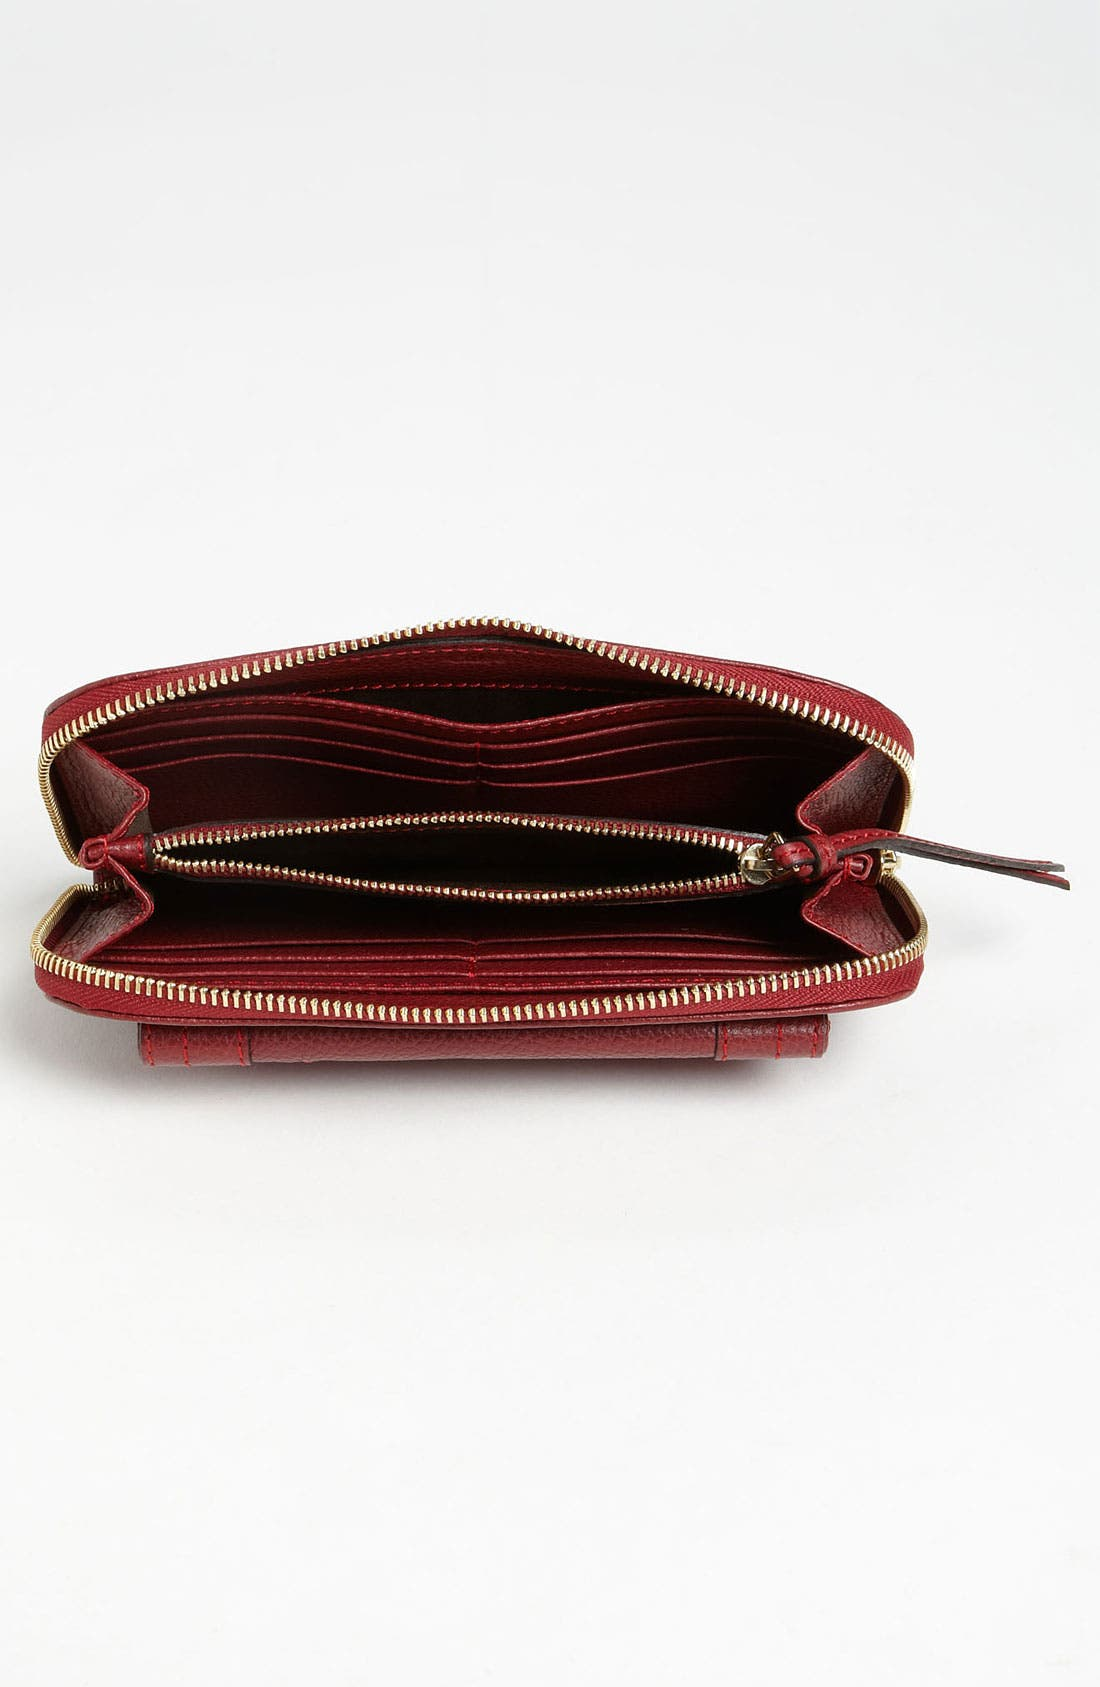 Alternate Image 3  - Chloé 'Paraty' Leather Wallet